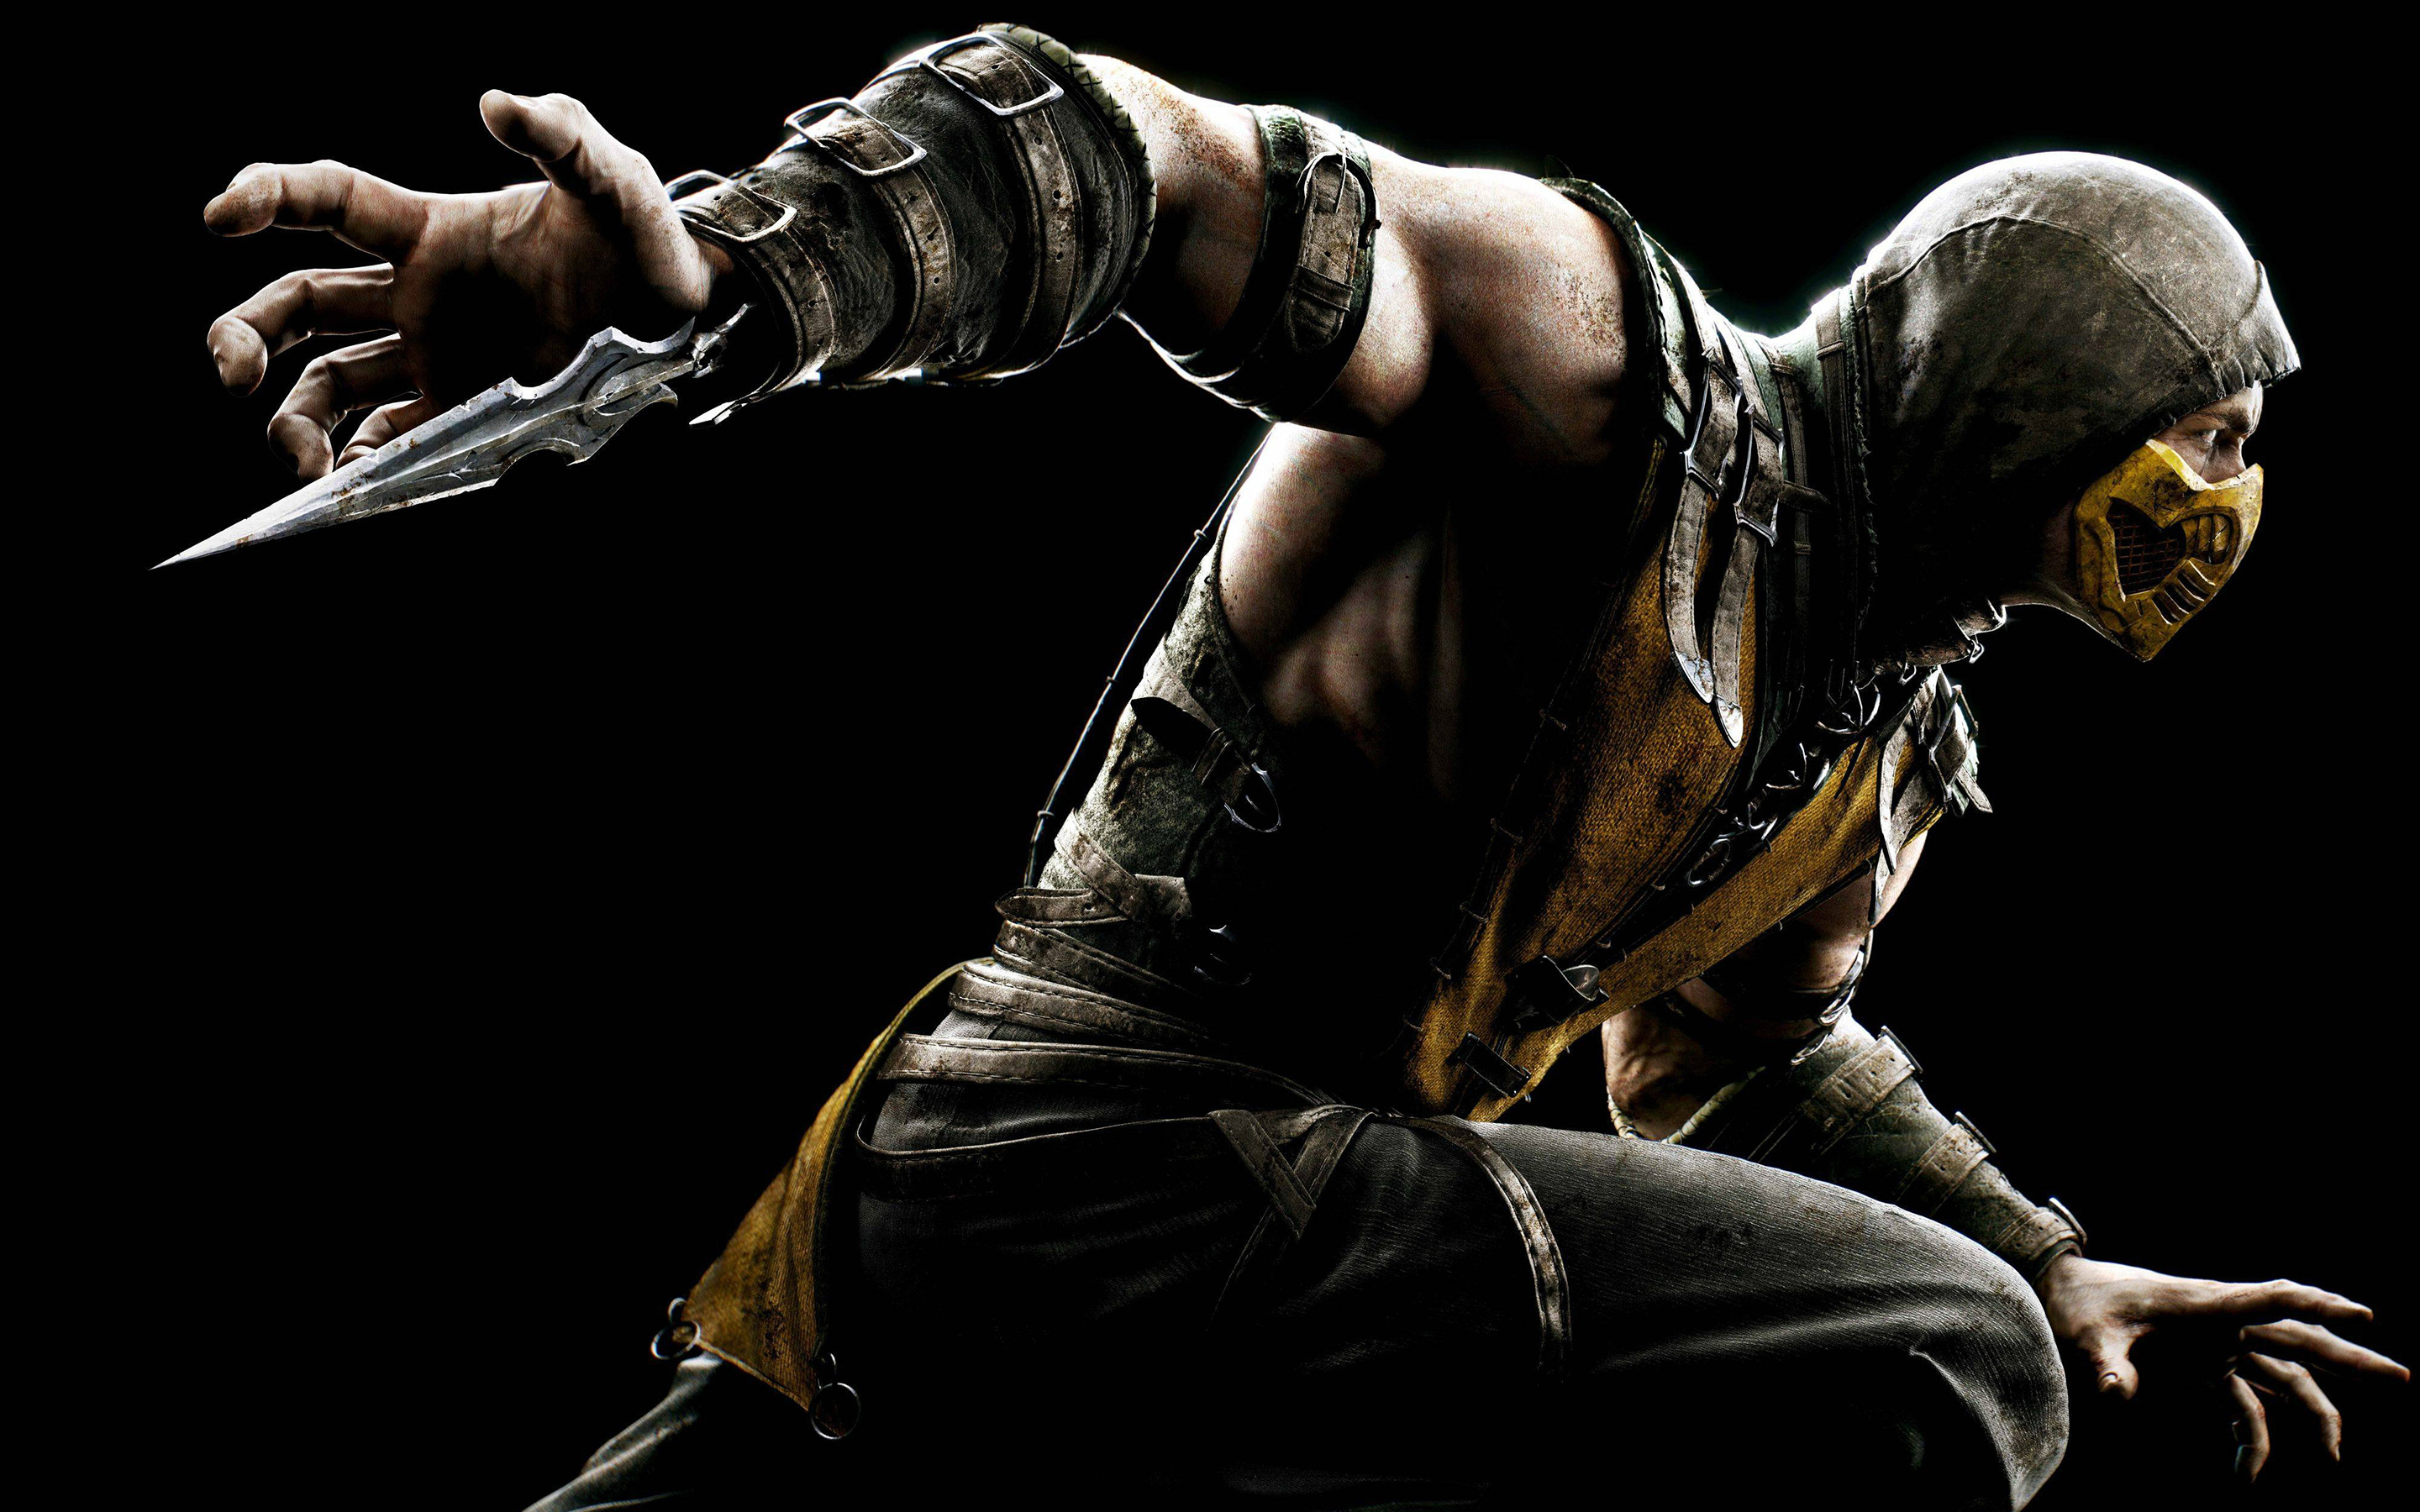 42 Mortal Kombat X Wallpaper Hd On Wallpapersafari